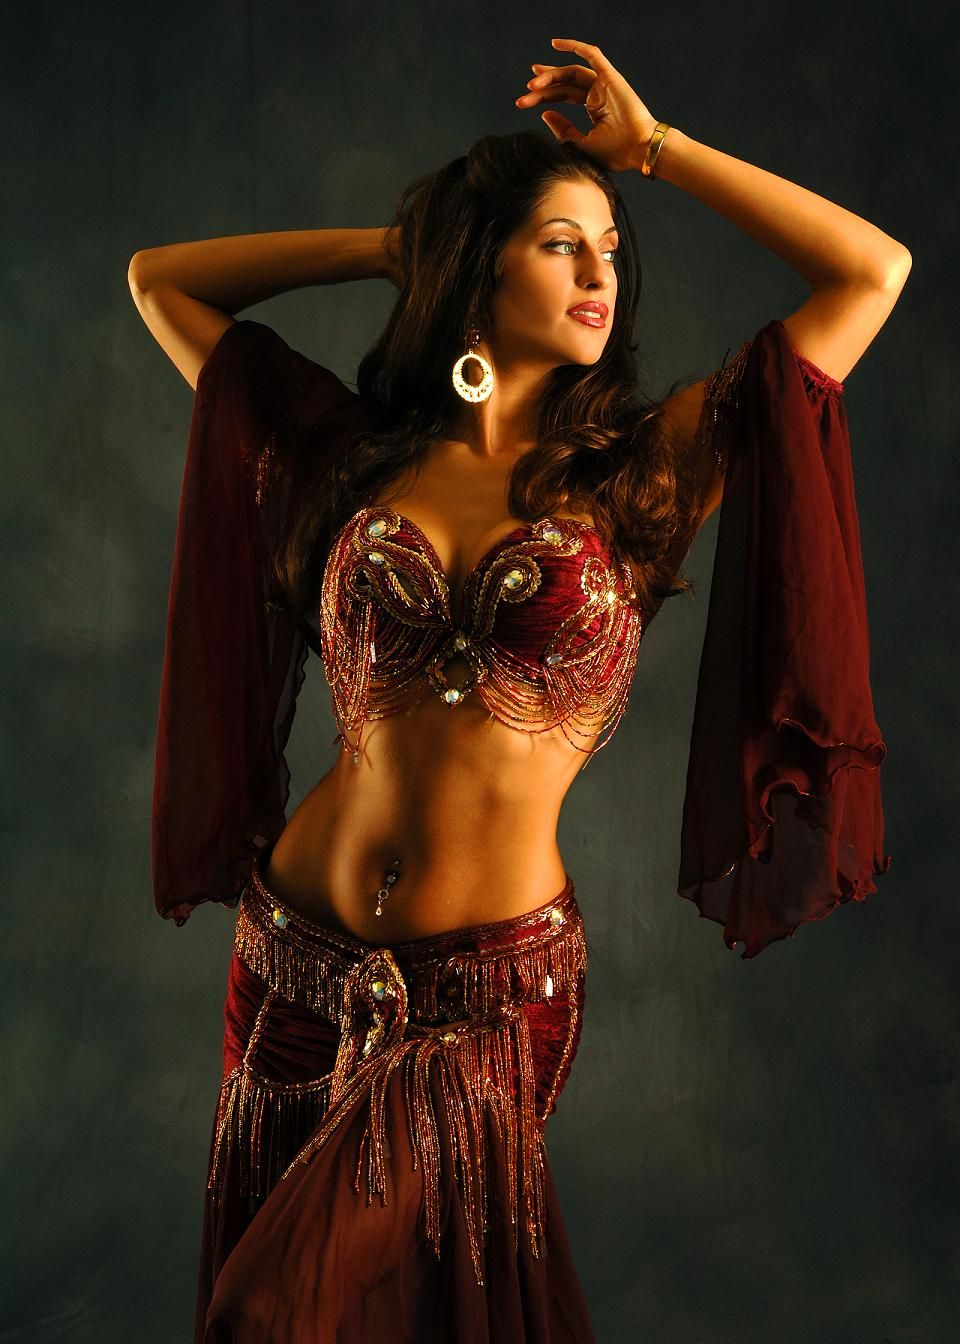 belly dancing | belly_dancing_in_dubai-sexy-dancers-hot-dance-arab